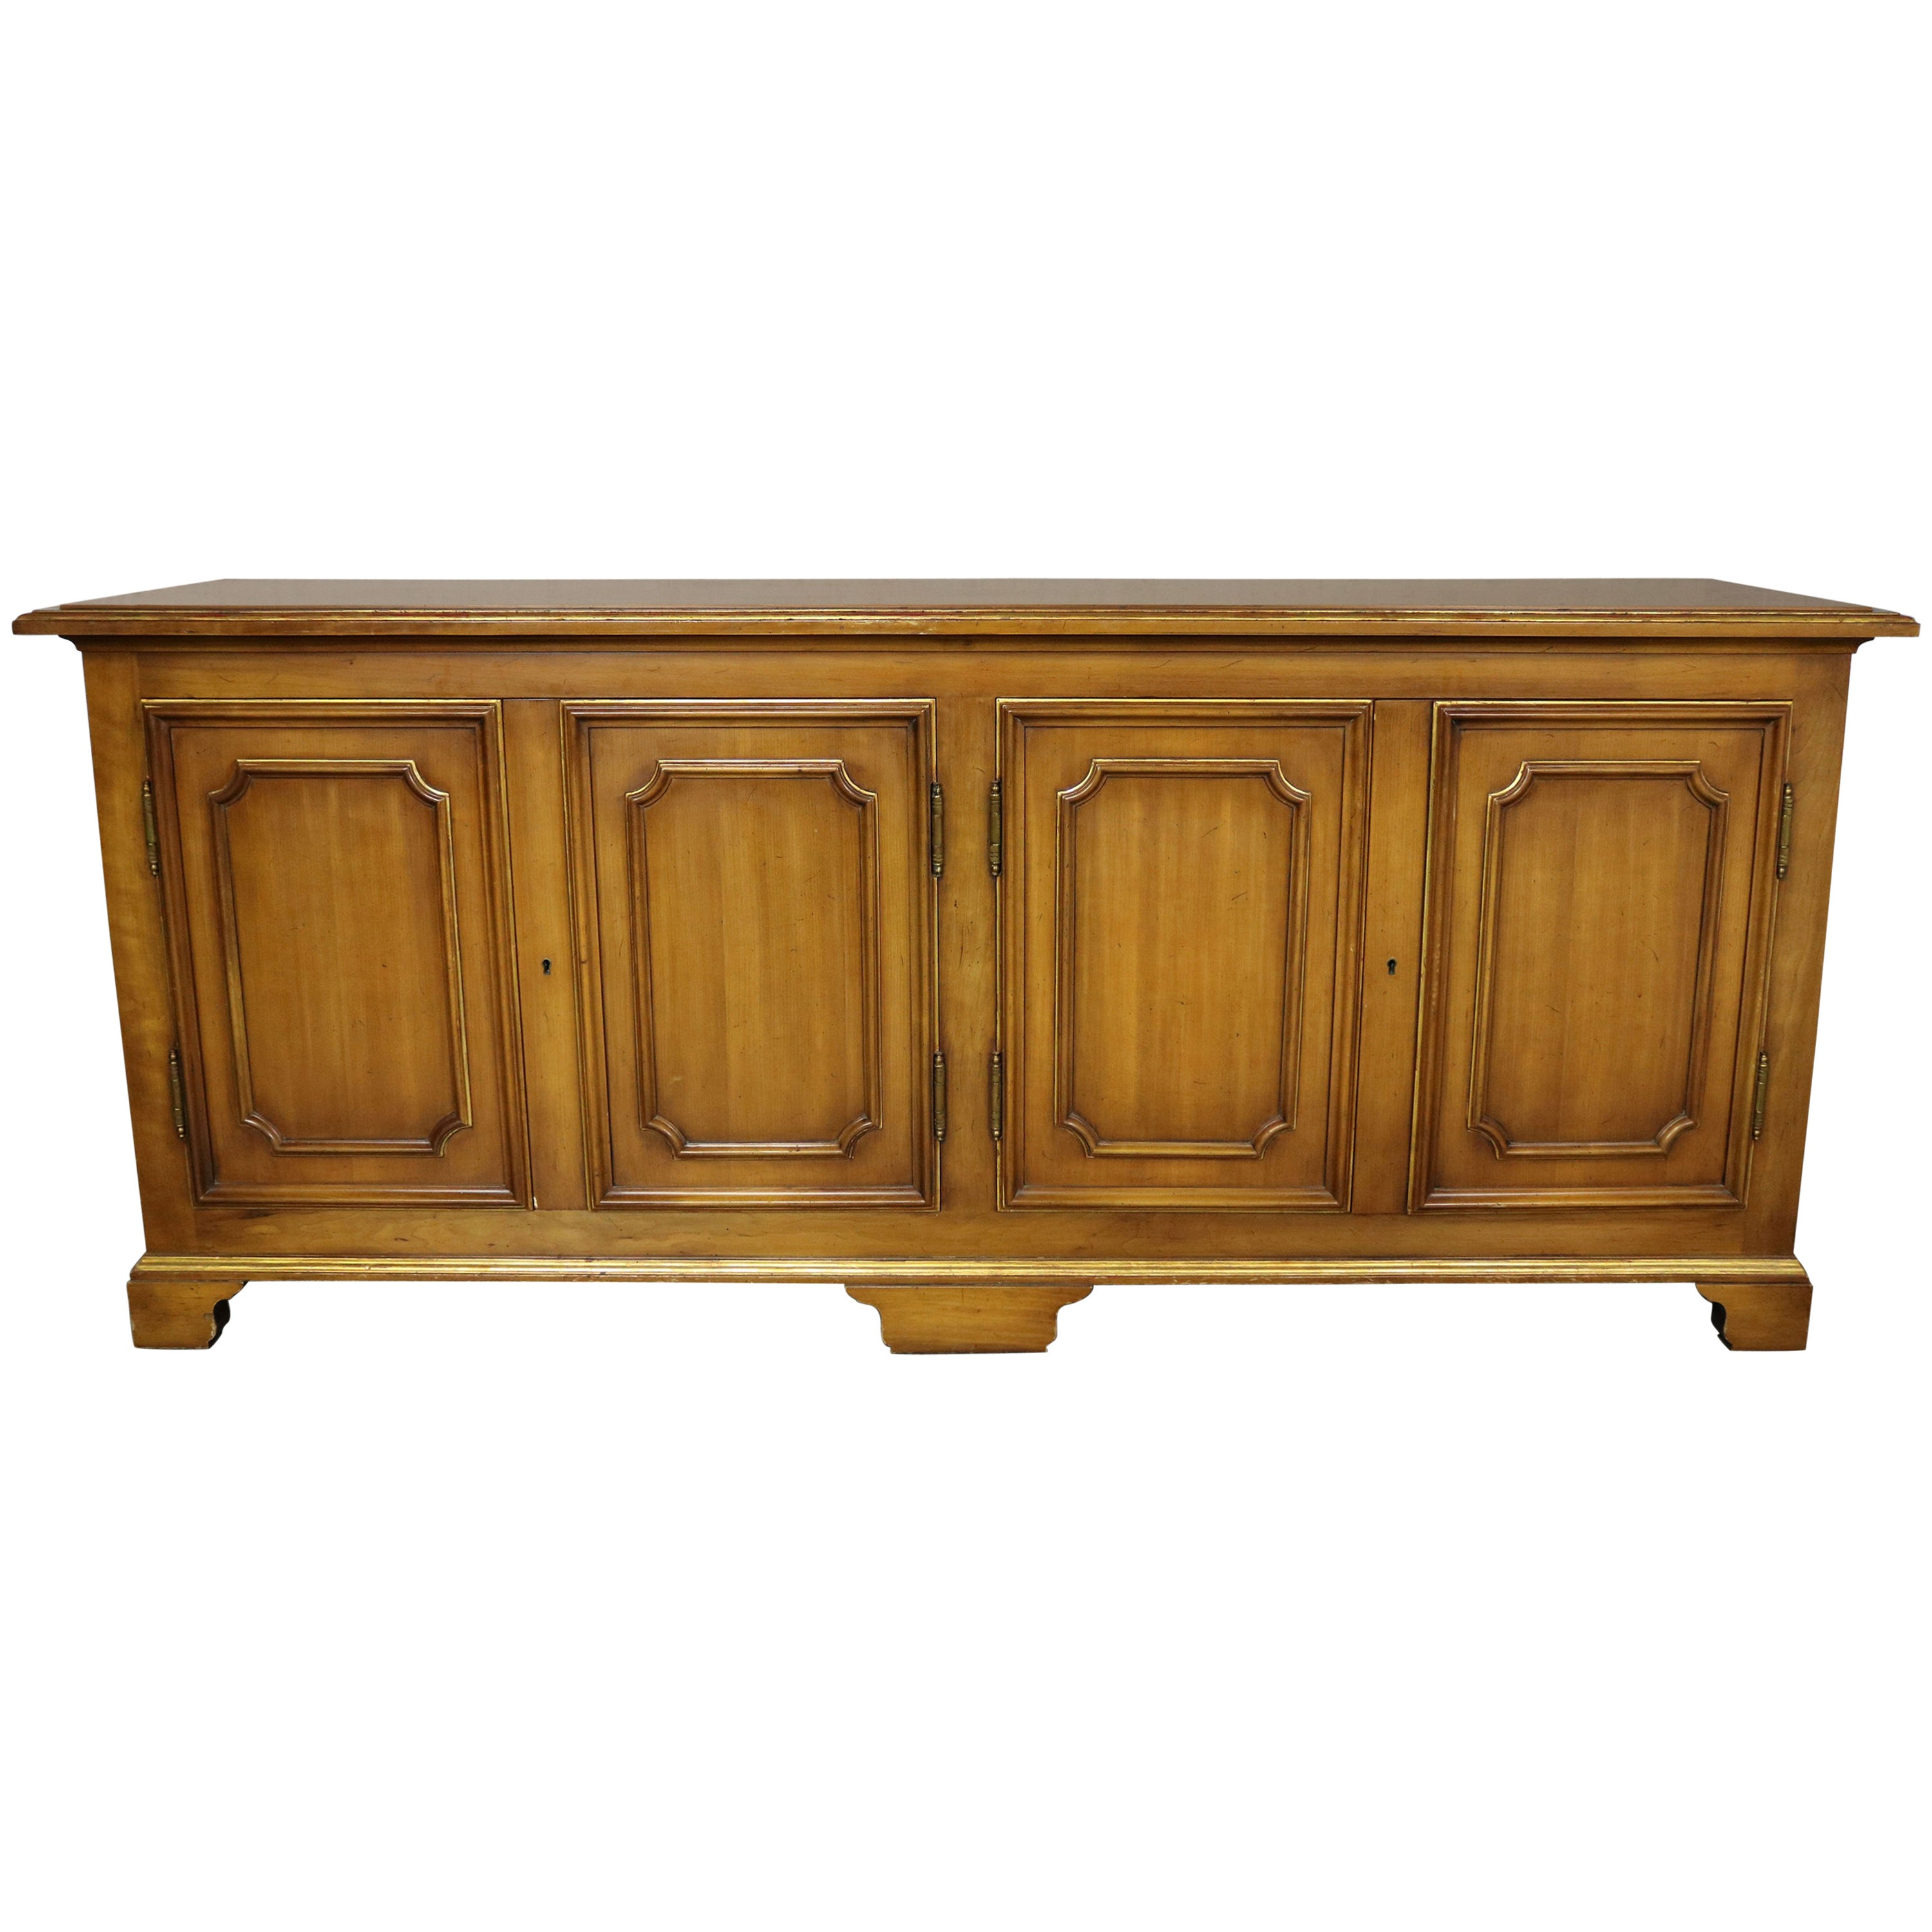 John Widdicomb Painted Hollywood Regency Buffet Credenza with Gilt Accents